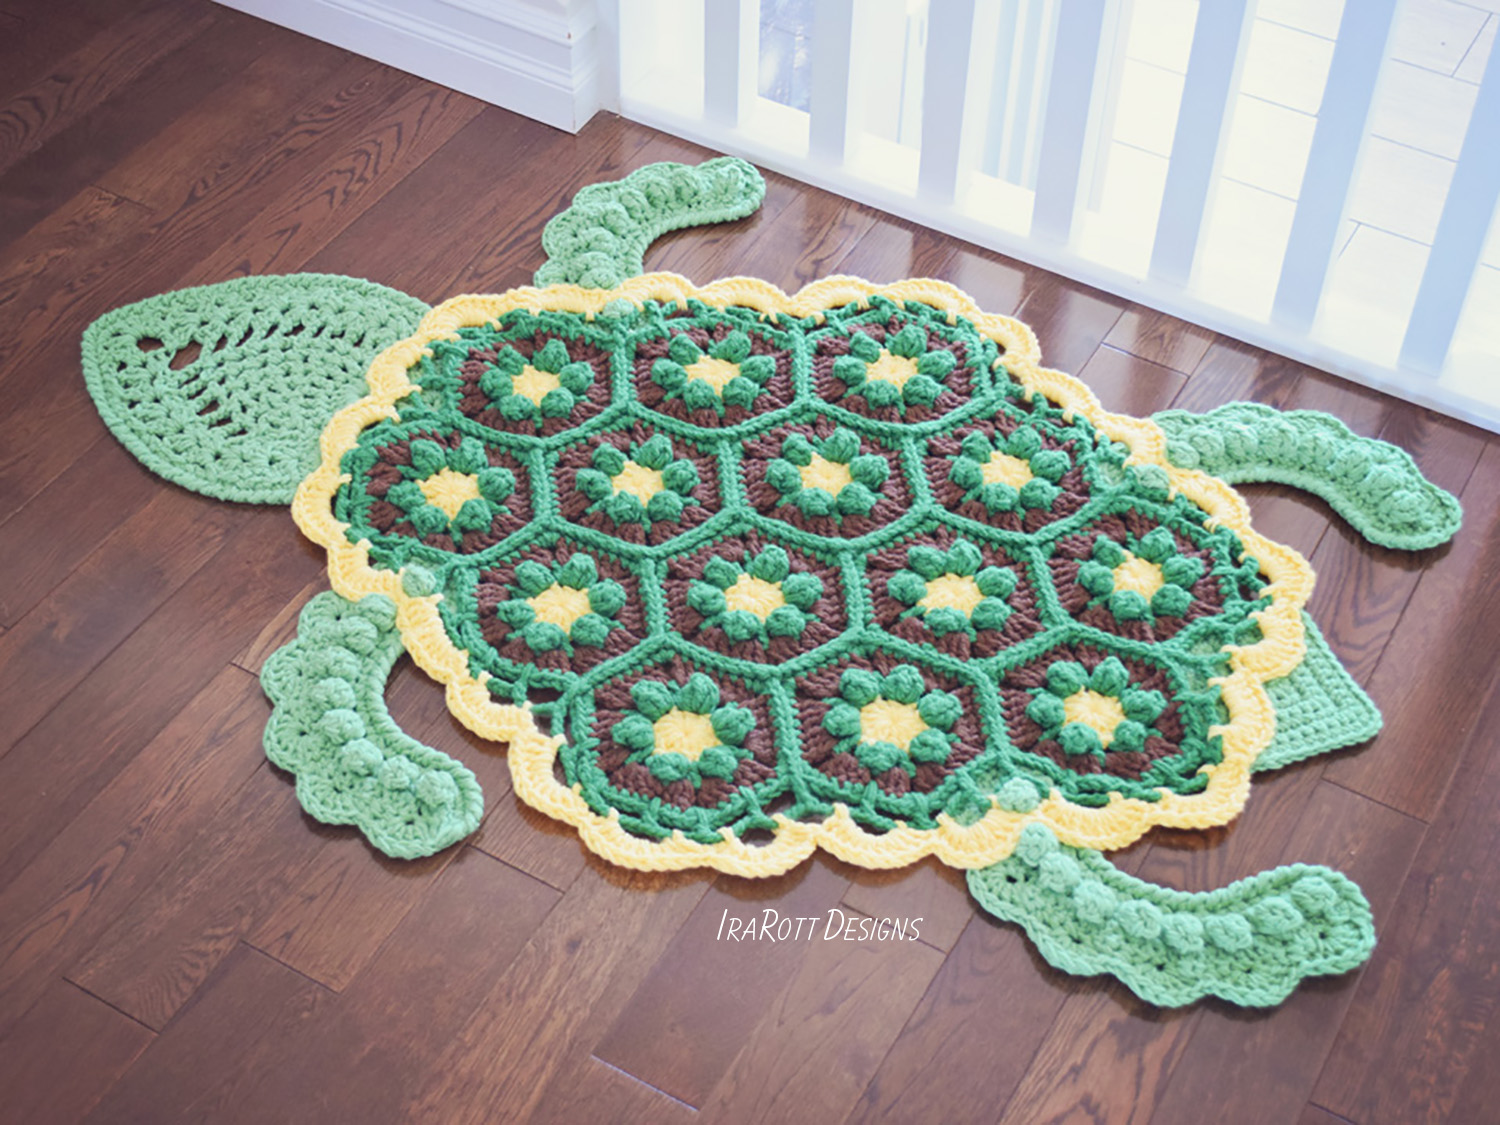 Crochet Rug Patterns Irarott Inc